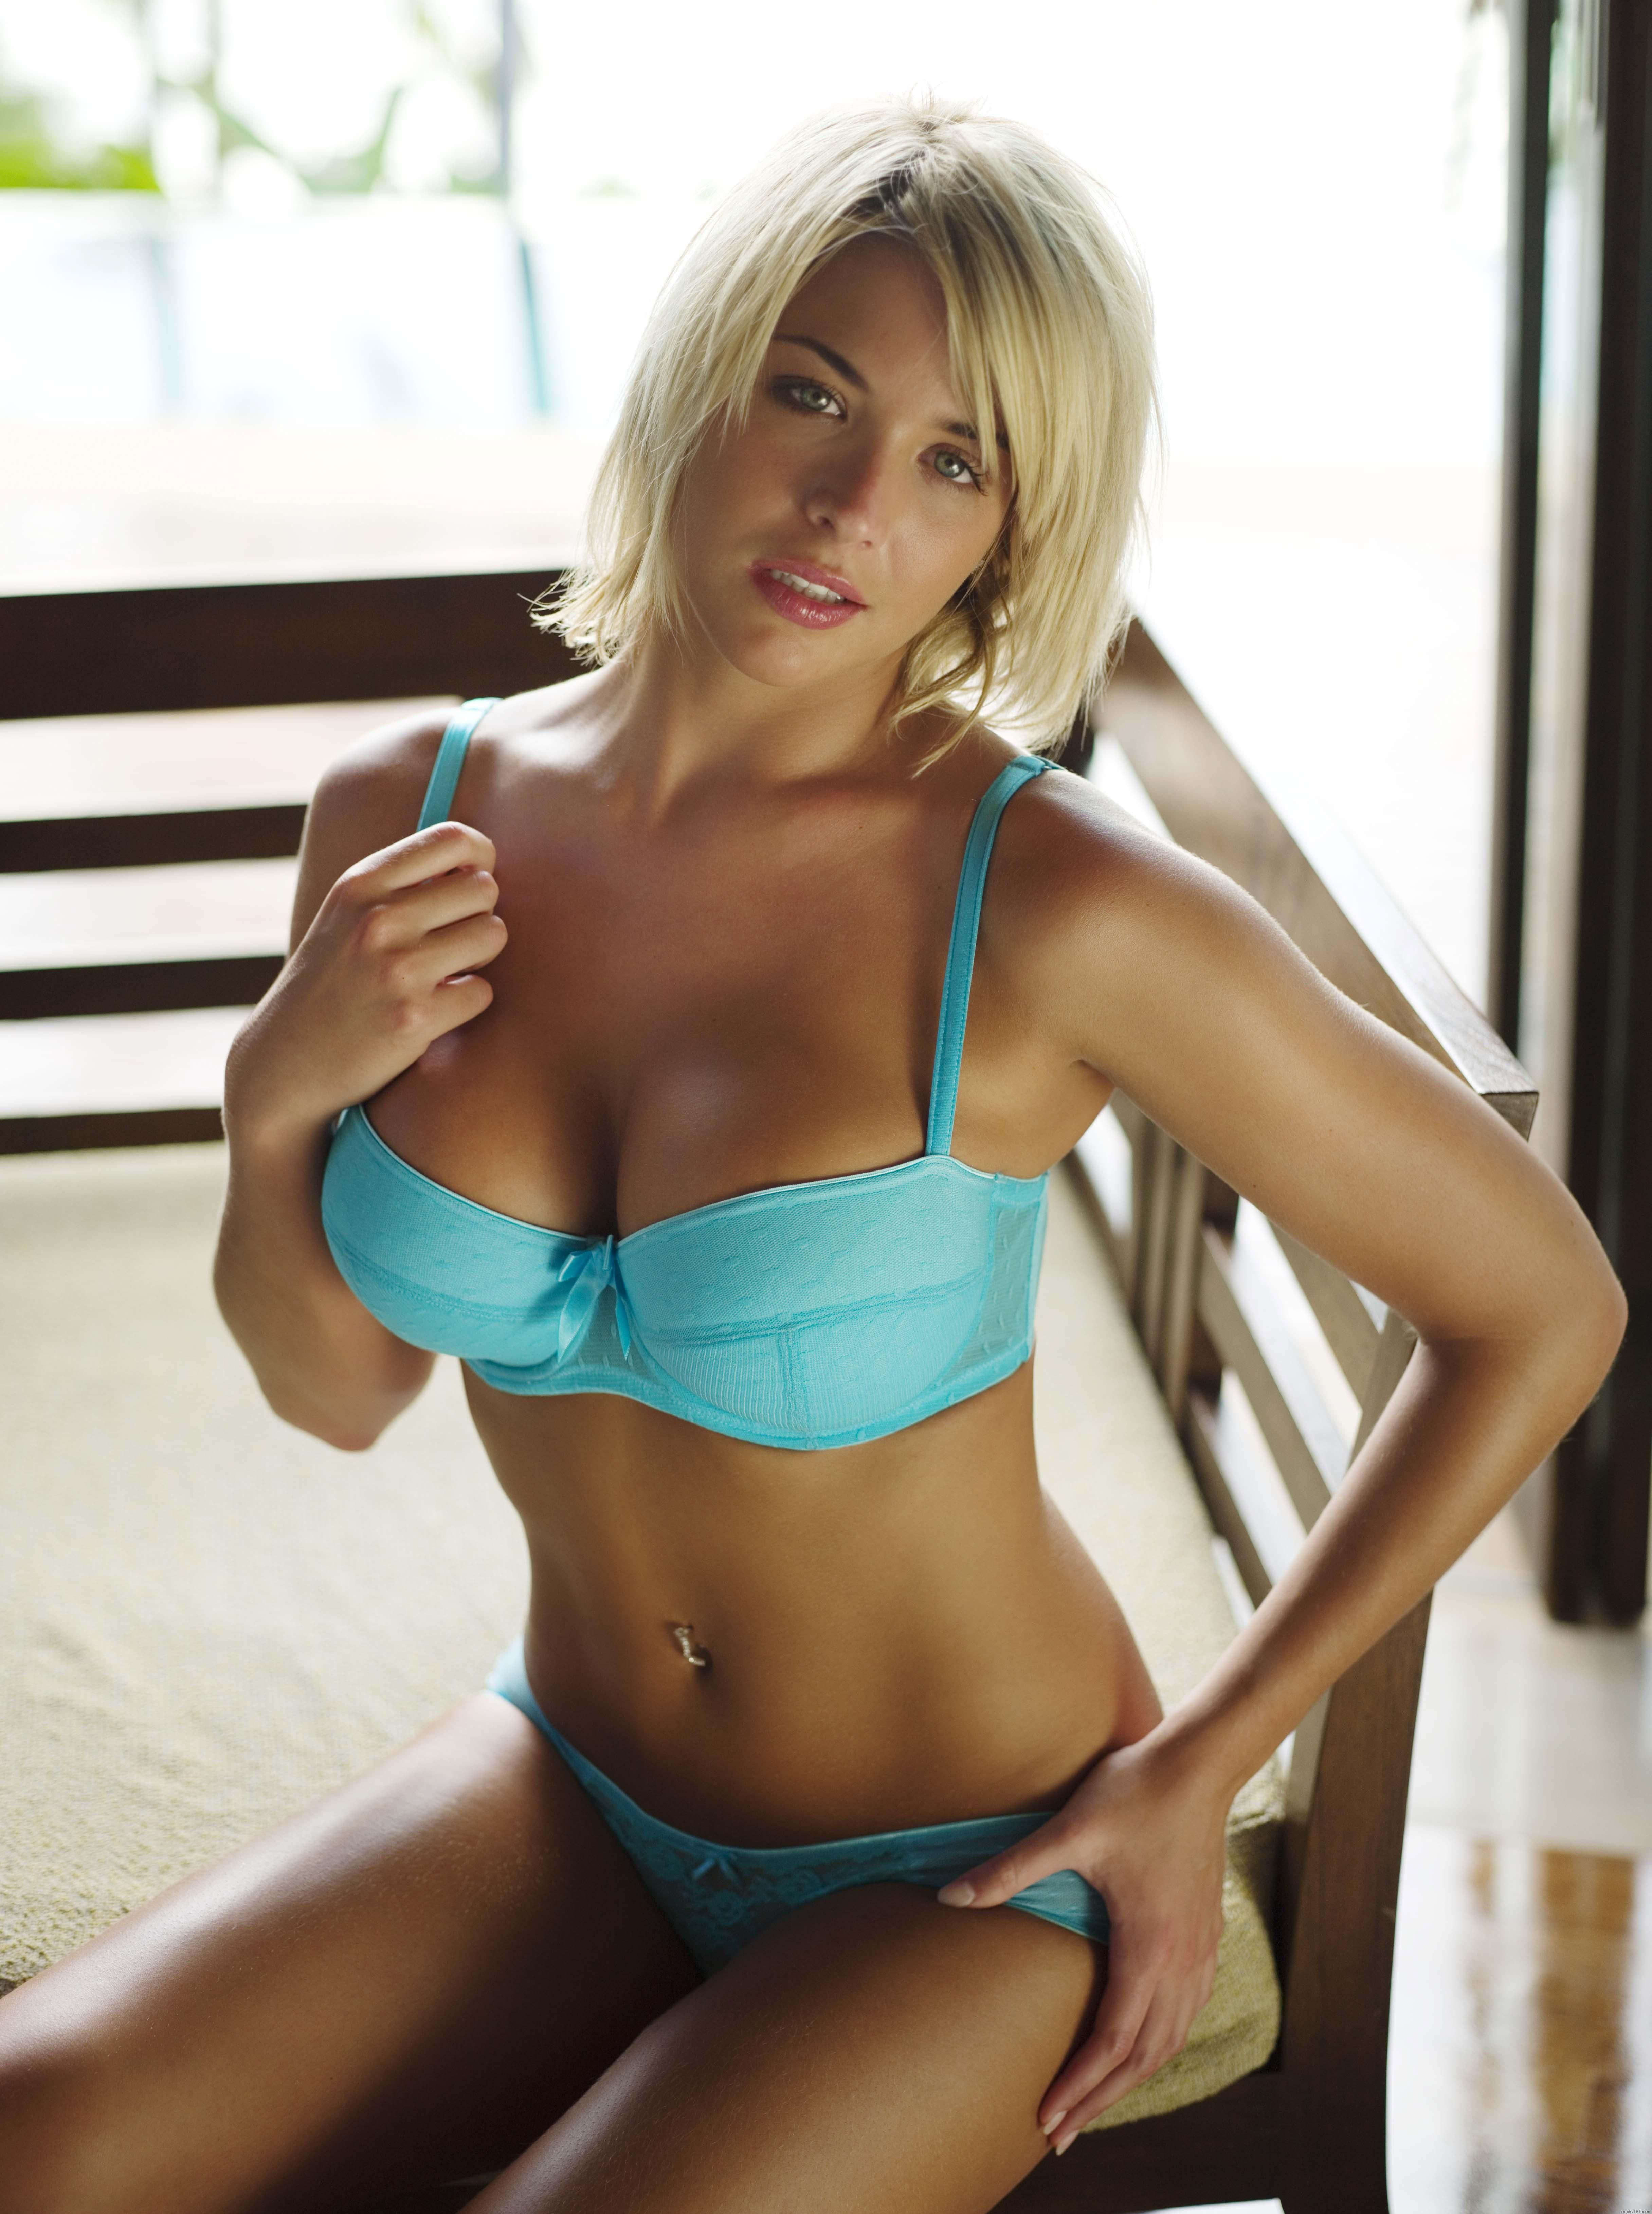 gemma atkinson image 40 - photo #13